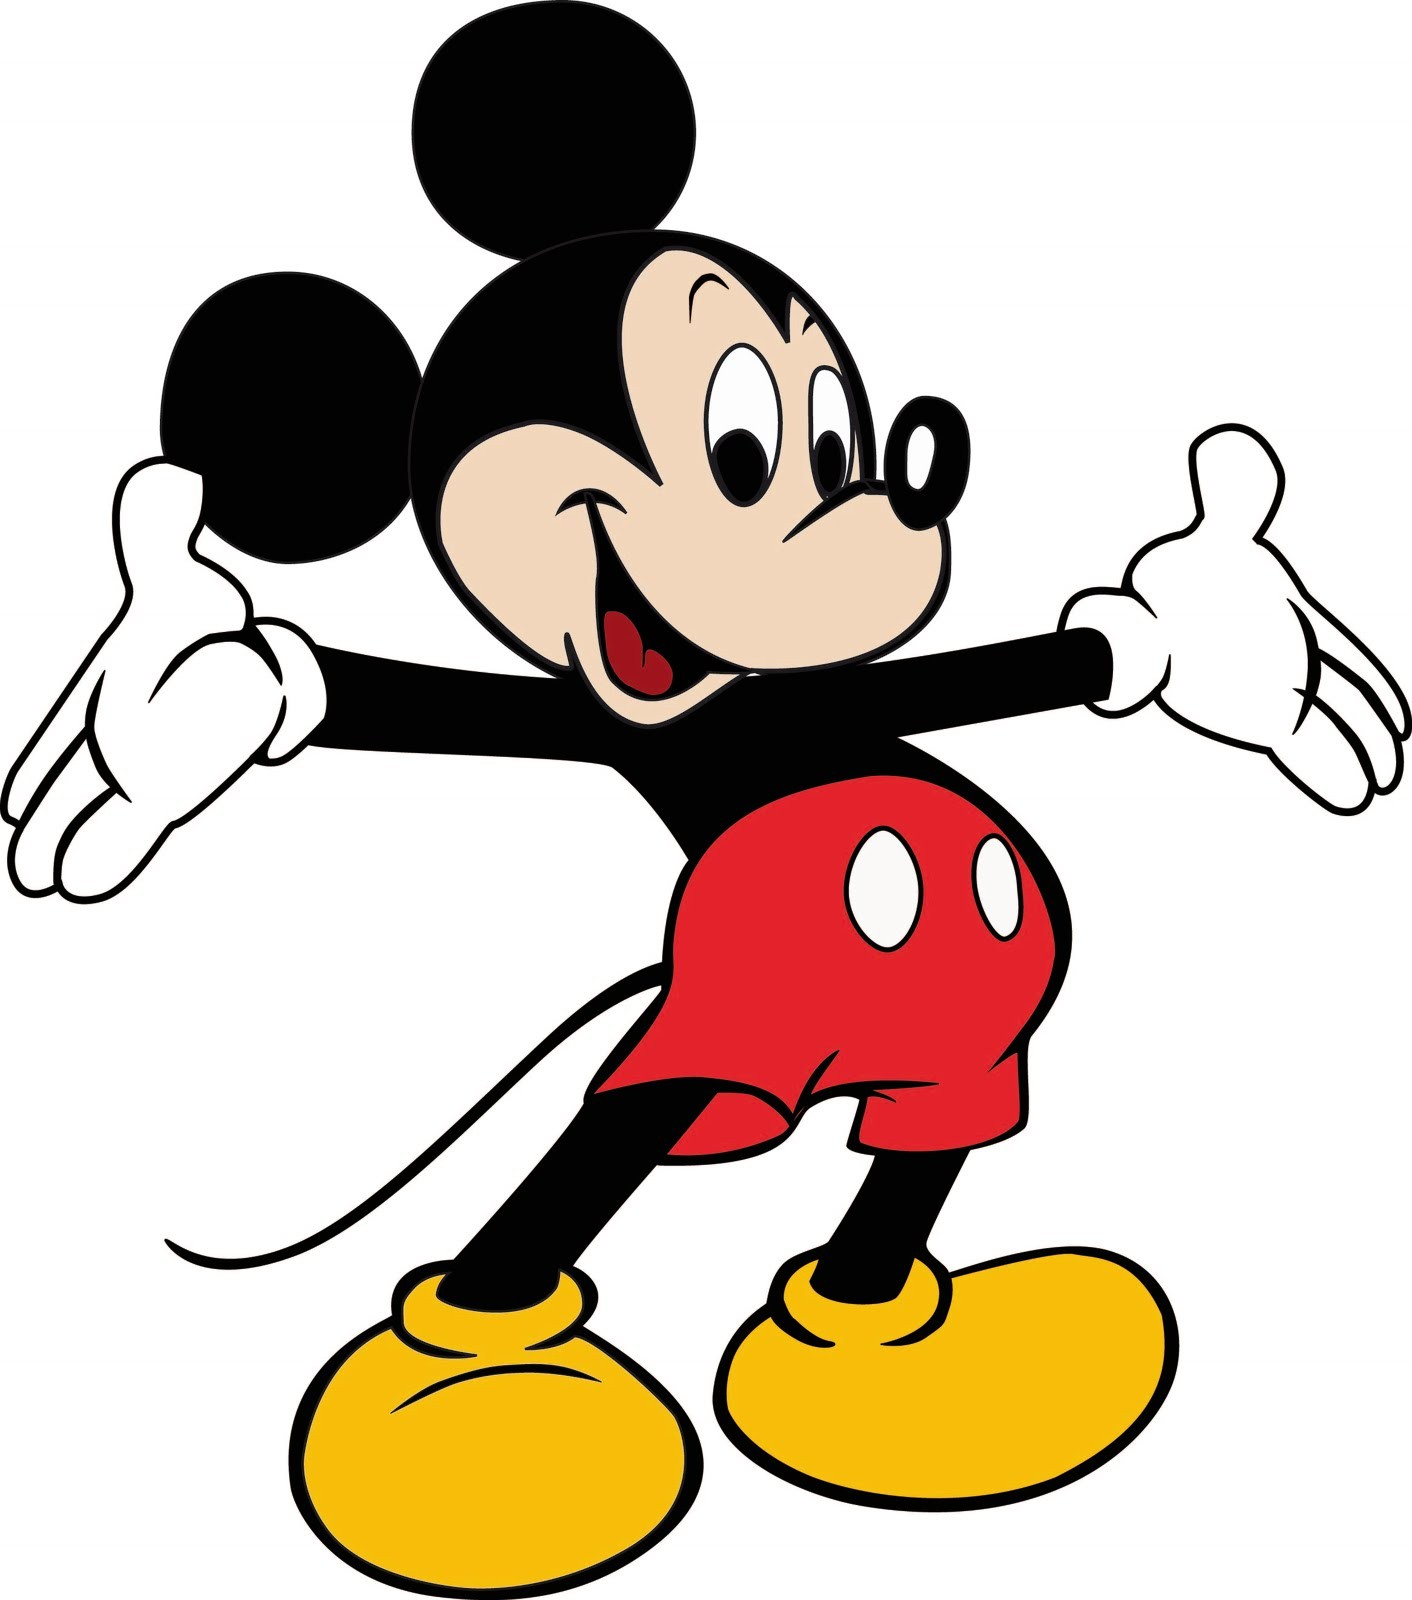 1412x1600 Baby Mickey Mouse Coloring Pages To Print Copy Baby Mickey Mouse